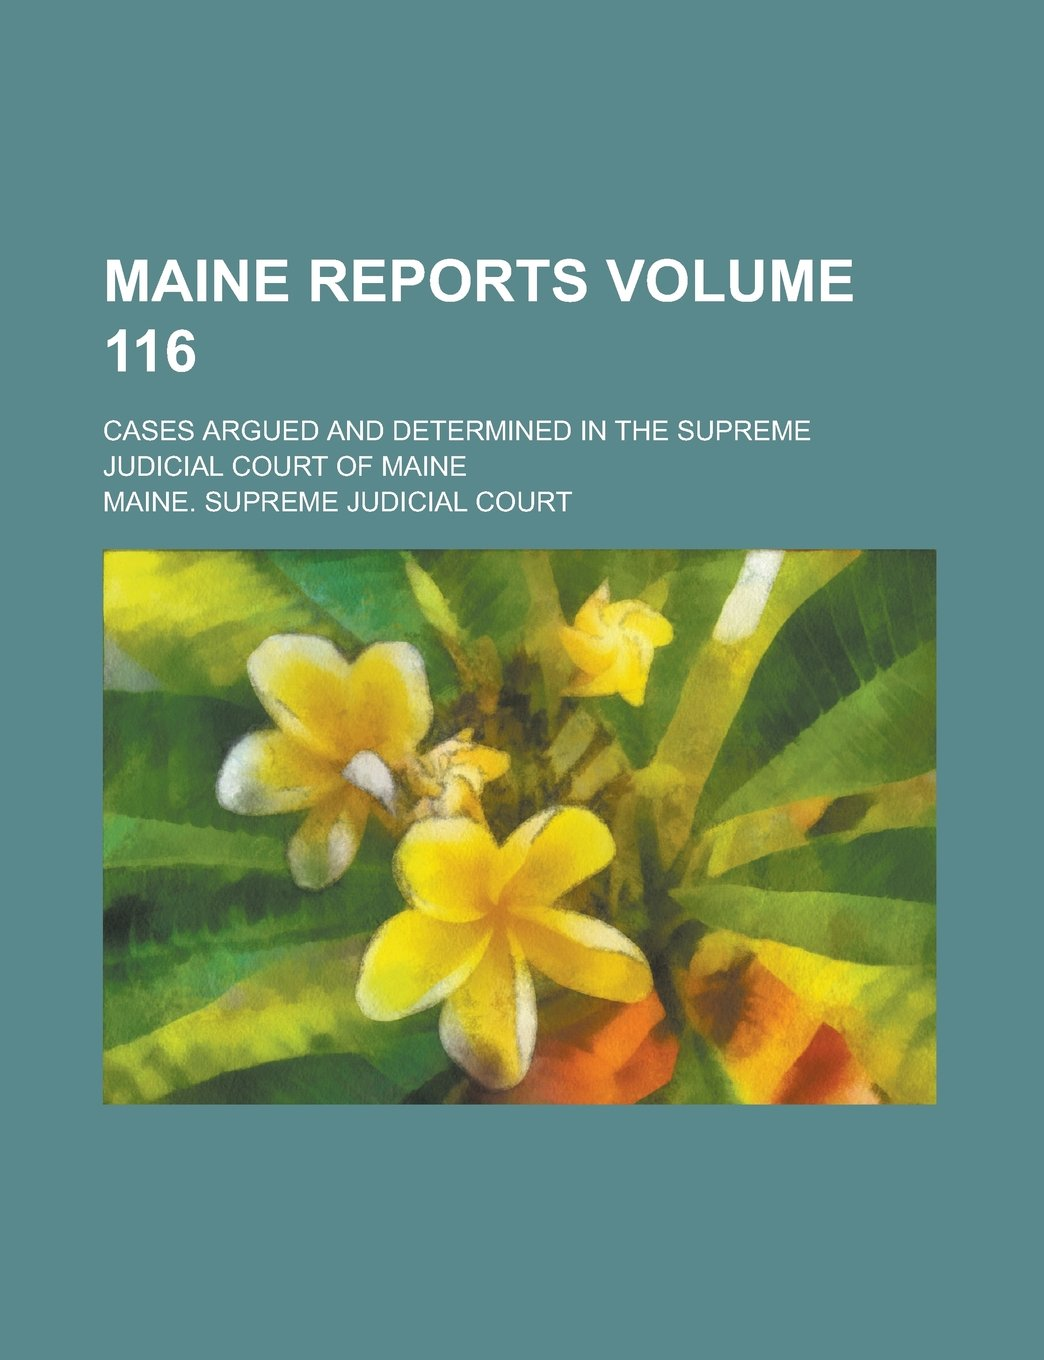 Maine Reports; Cases Argued and Determined in the Supreme Judicial Court of Maine Volume 116 ebook